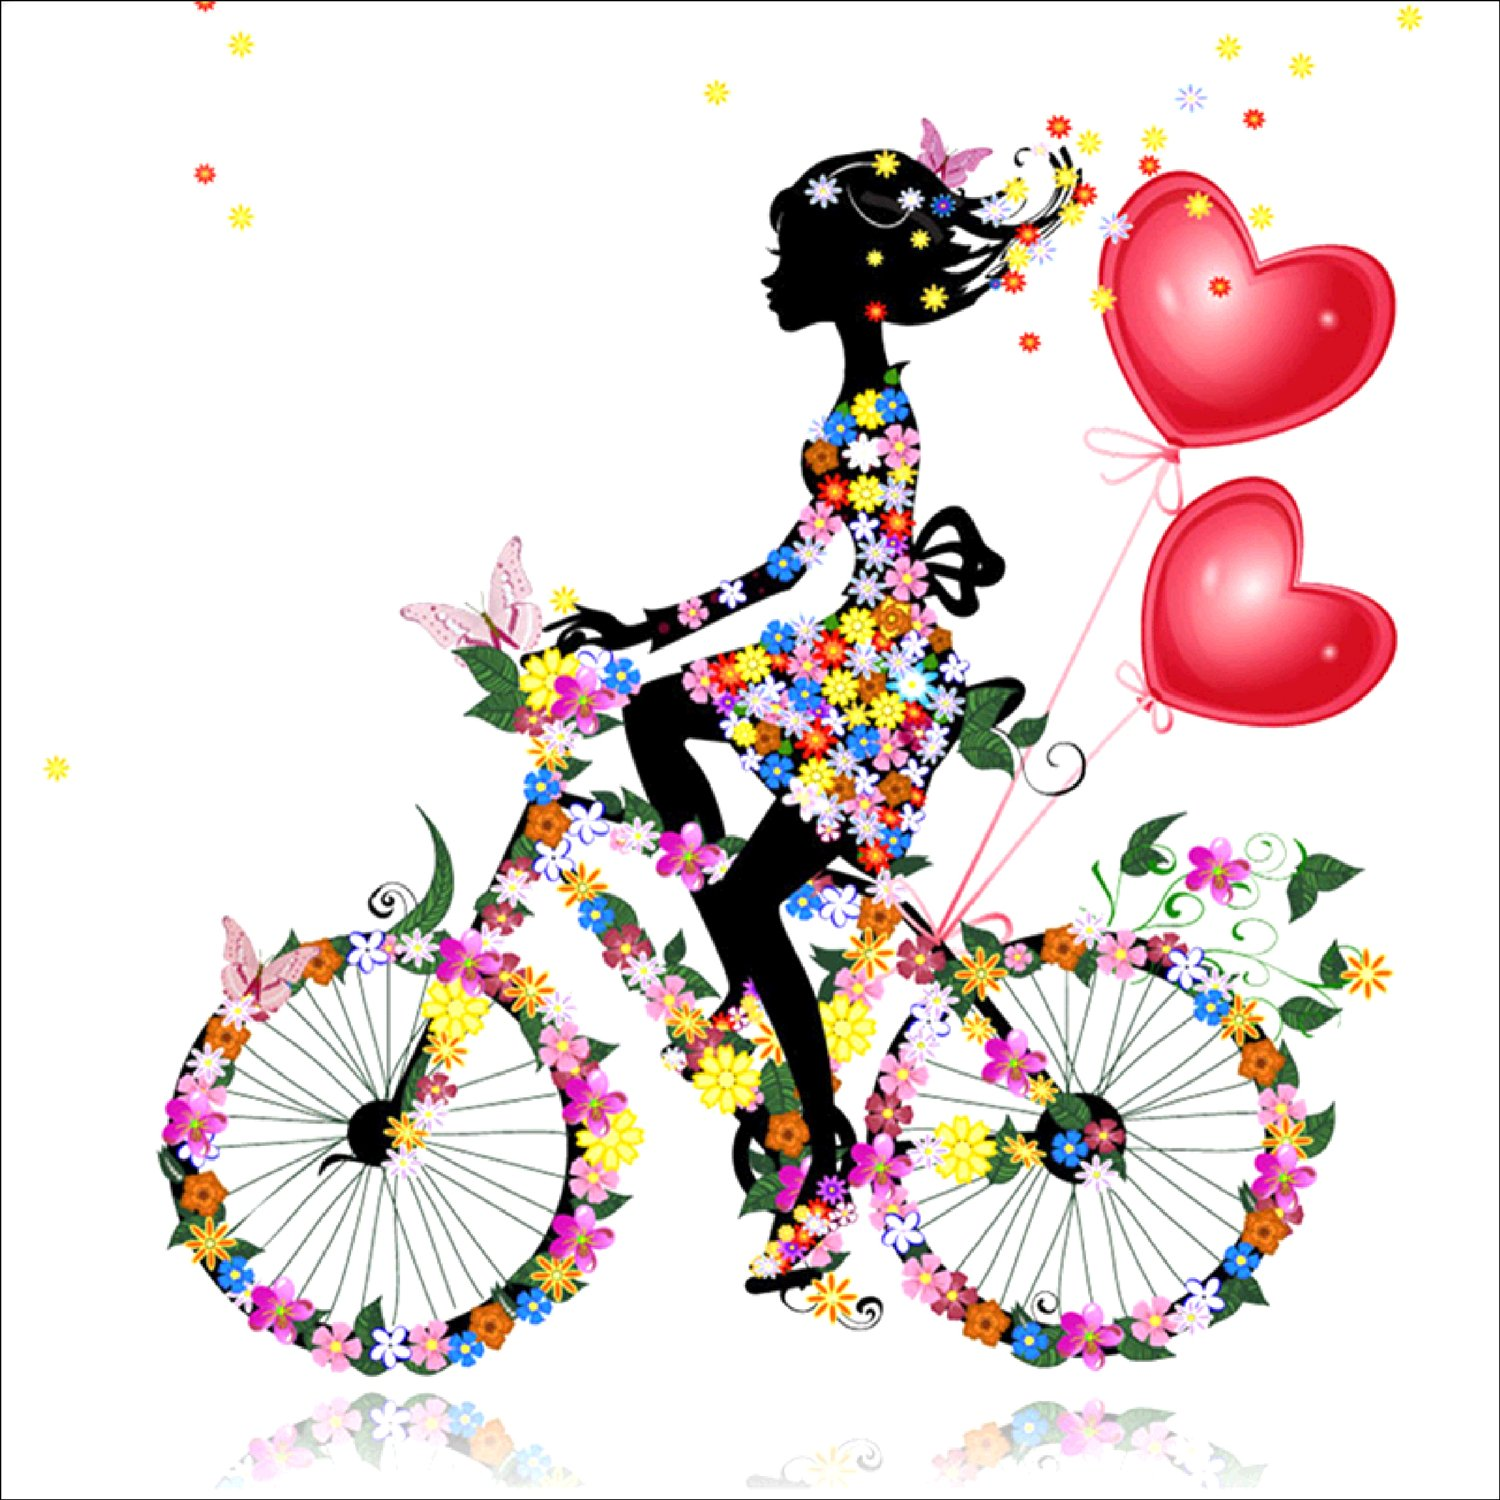 DIY 5D Diamond Painting by Number Kit, Girl Riding Bike Crystal Rhinestone Embroidery Cross Stitch Ornaments Arts Craft Canvas Wall Decor AIRDEA 4336933707